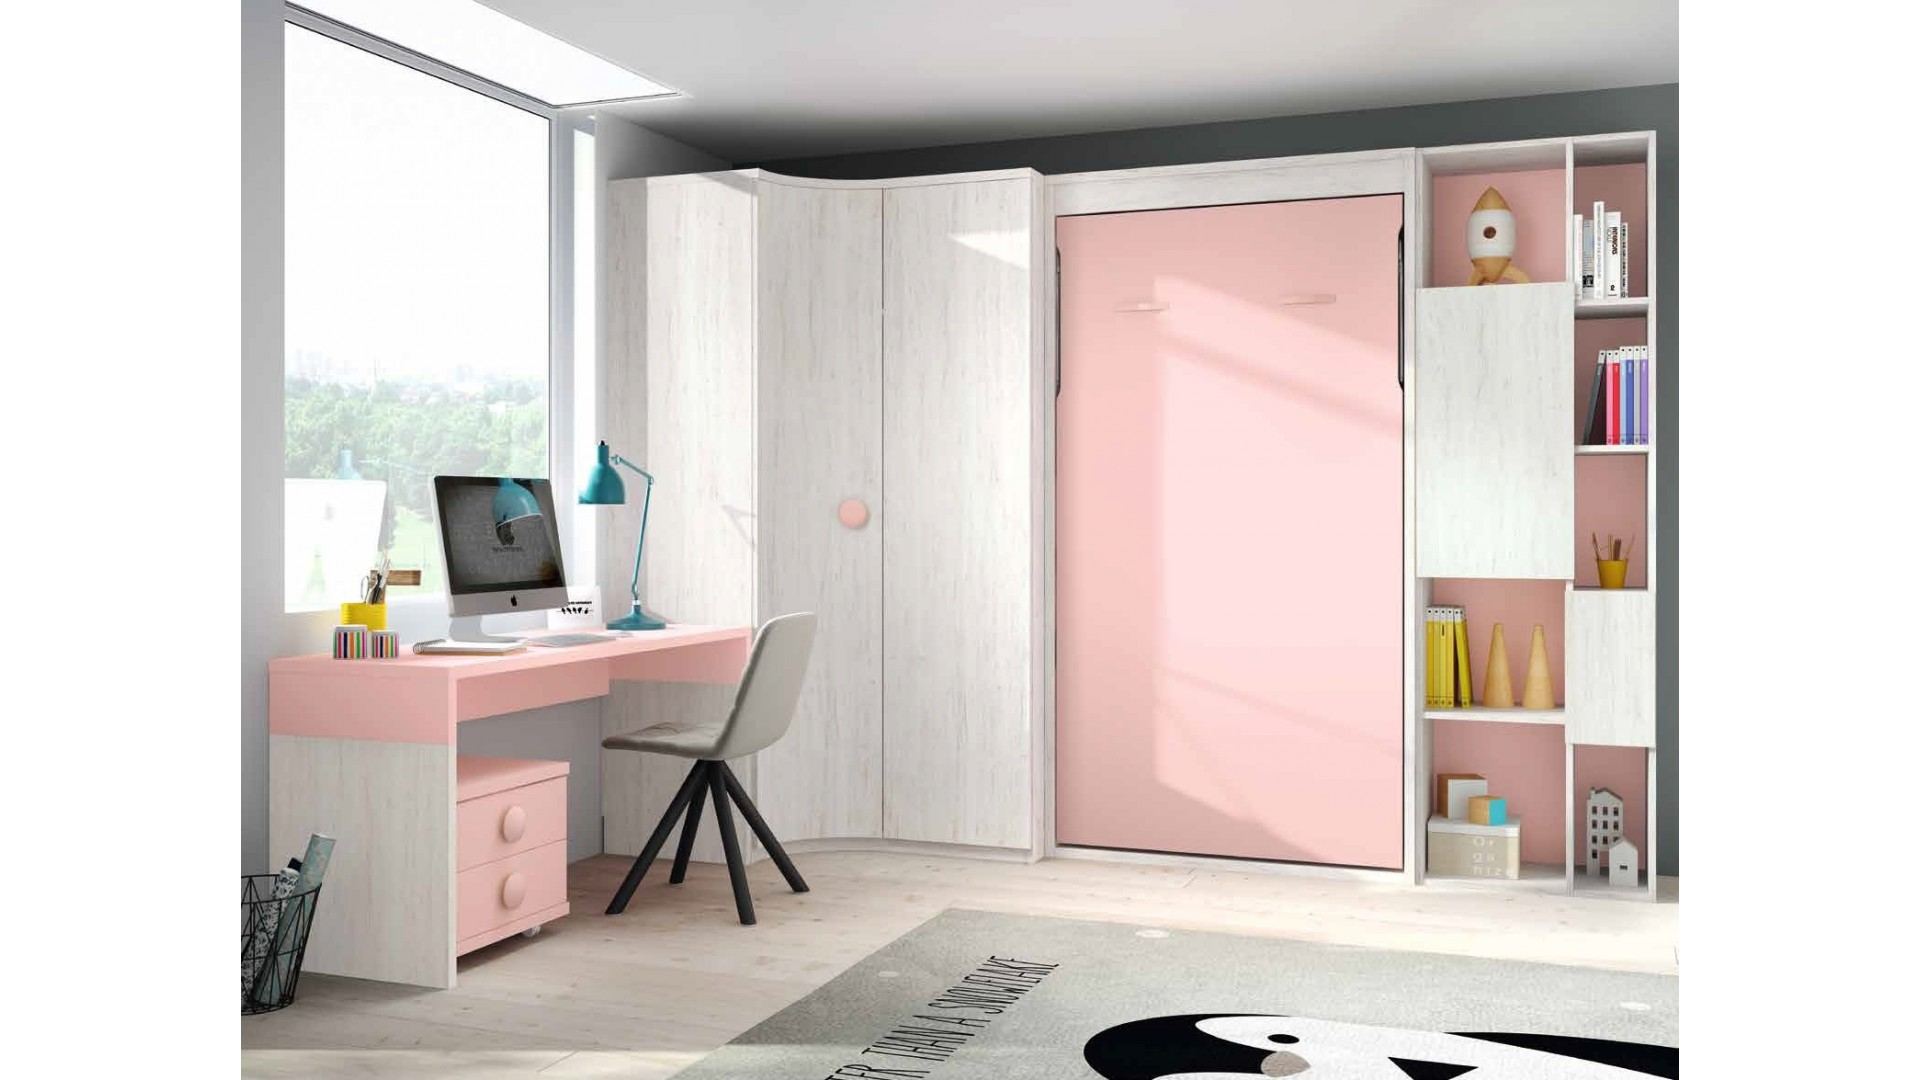 Lit Escamotable Vertical Lit Escamotable Vertical Chambre Personnalisable F419 2 Glicerio